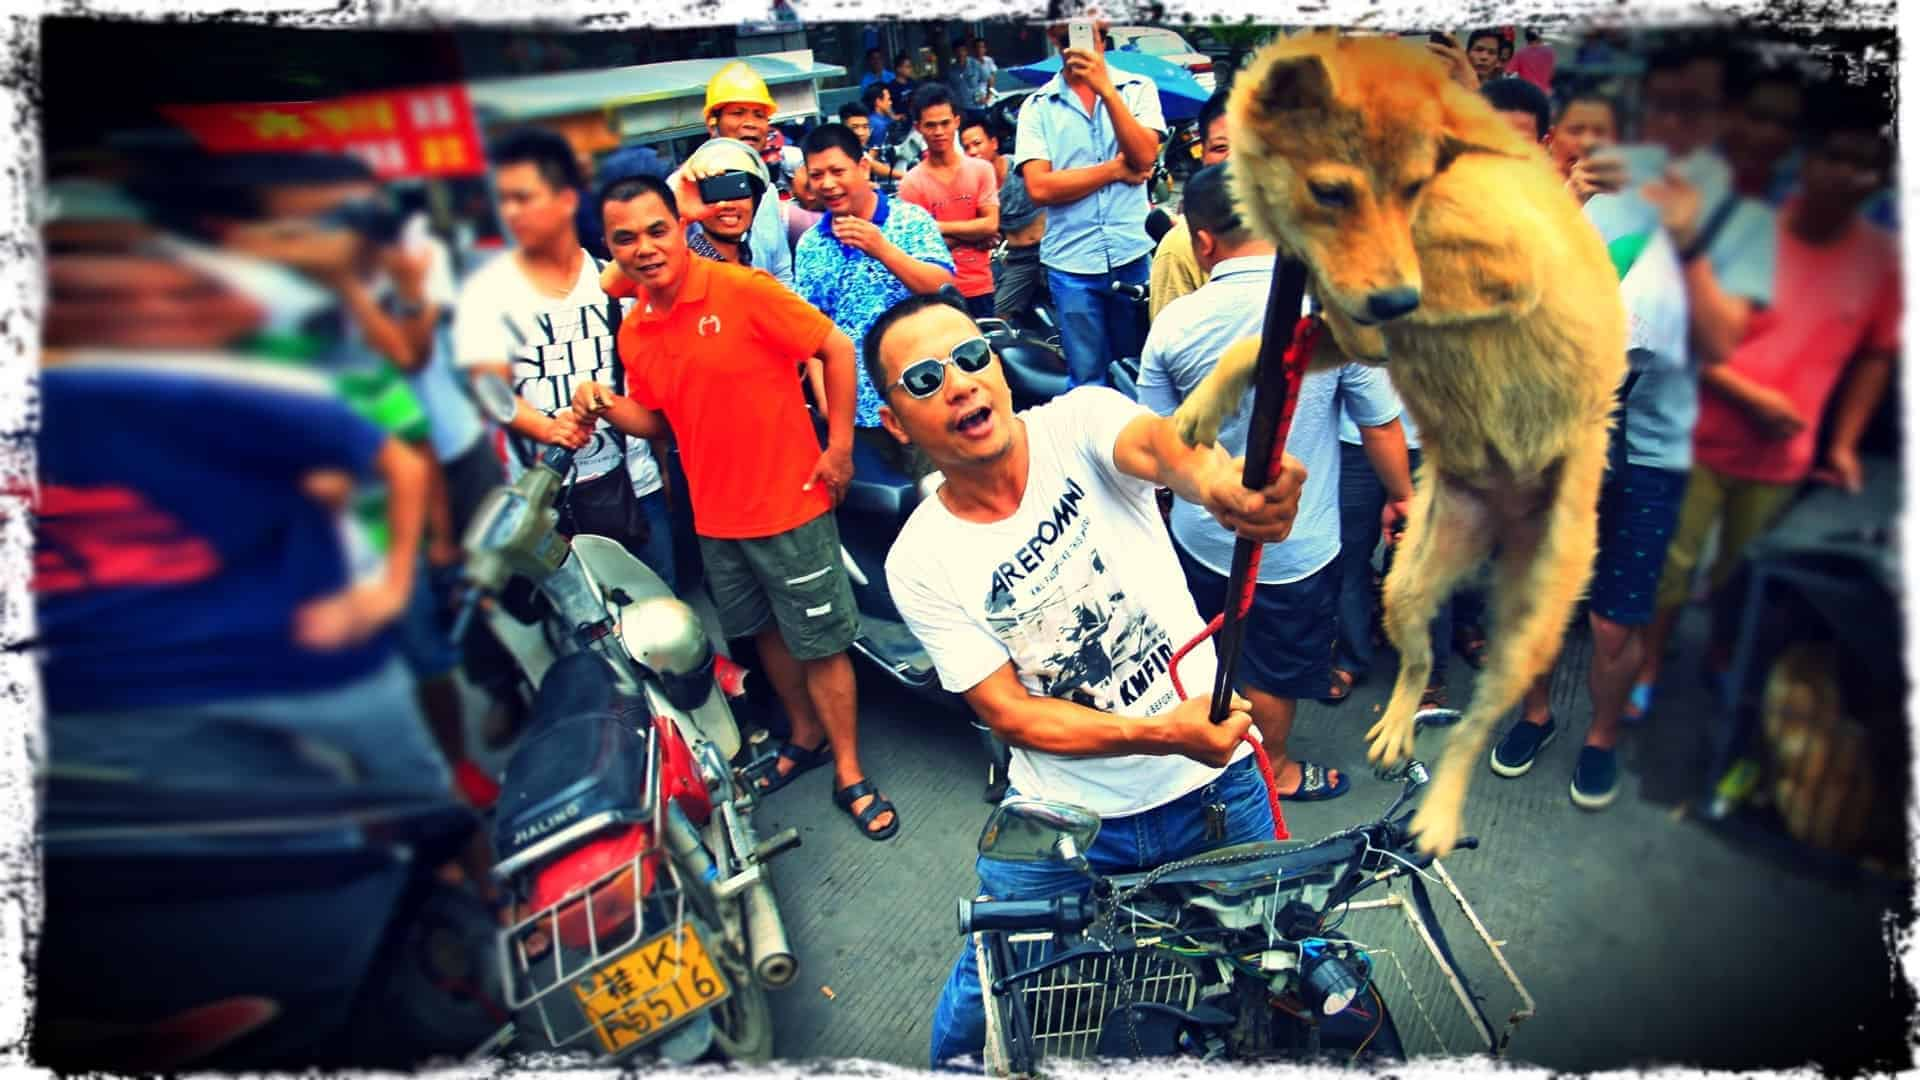 Surrounded by a milling crowd, a poor dog is lifted into the air, as in triumph by a person in a tee-shirt. The person uses an animal catcher's noose, which is tight around the dog's neck to lift it. The animal is in distress.